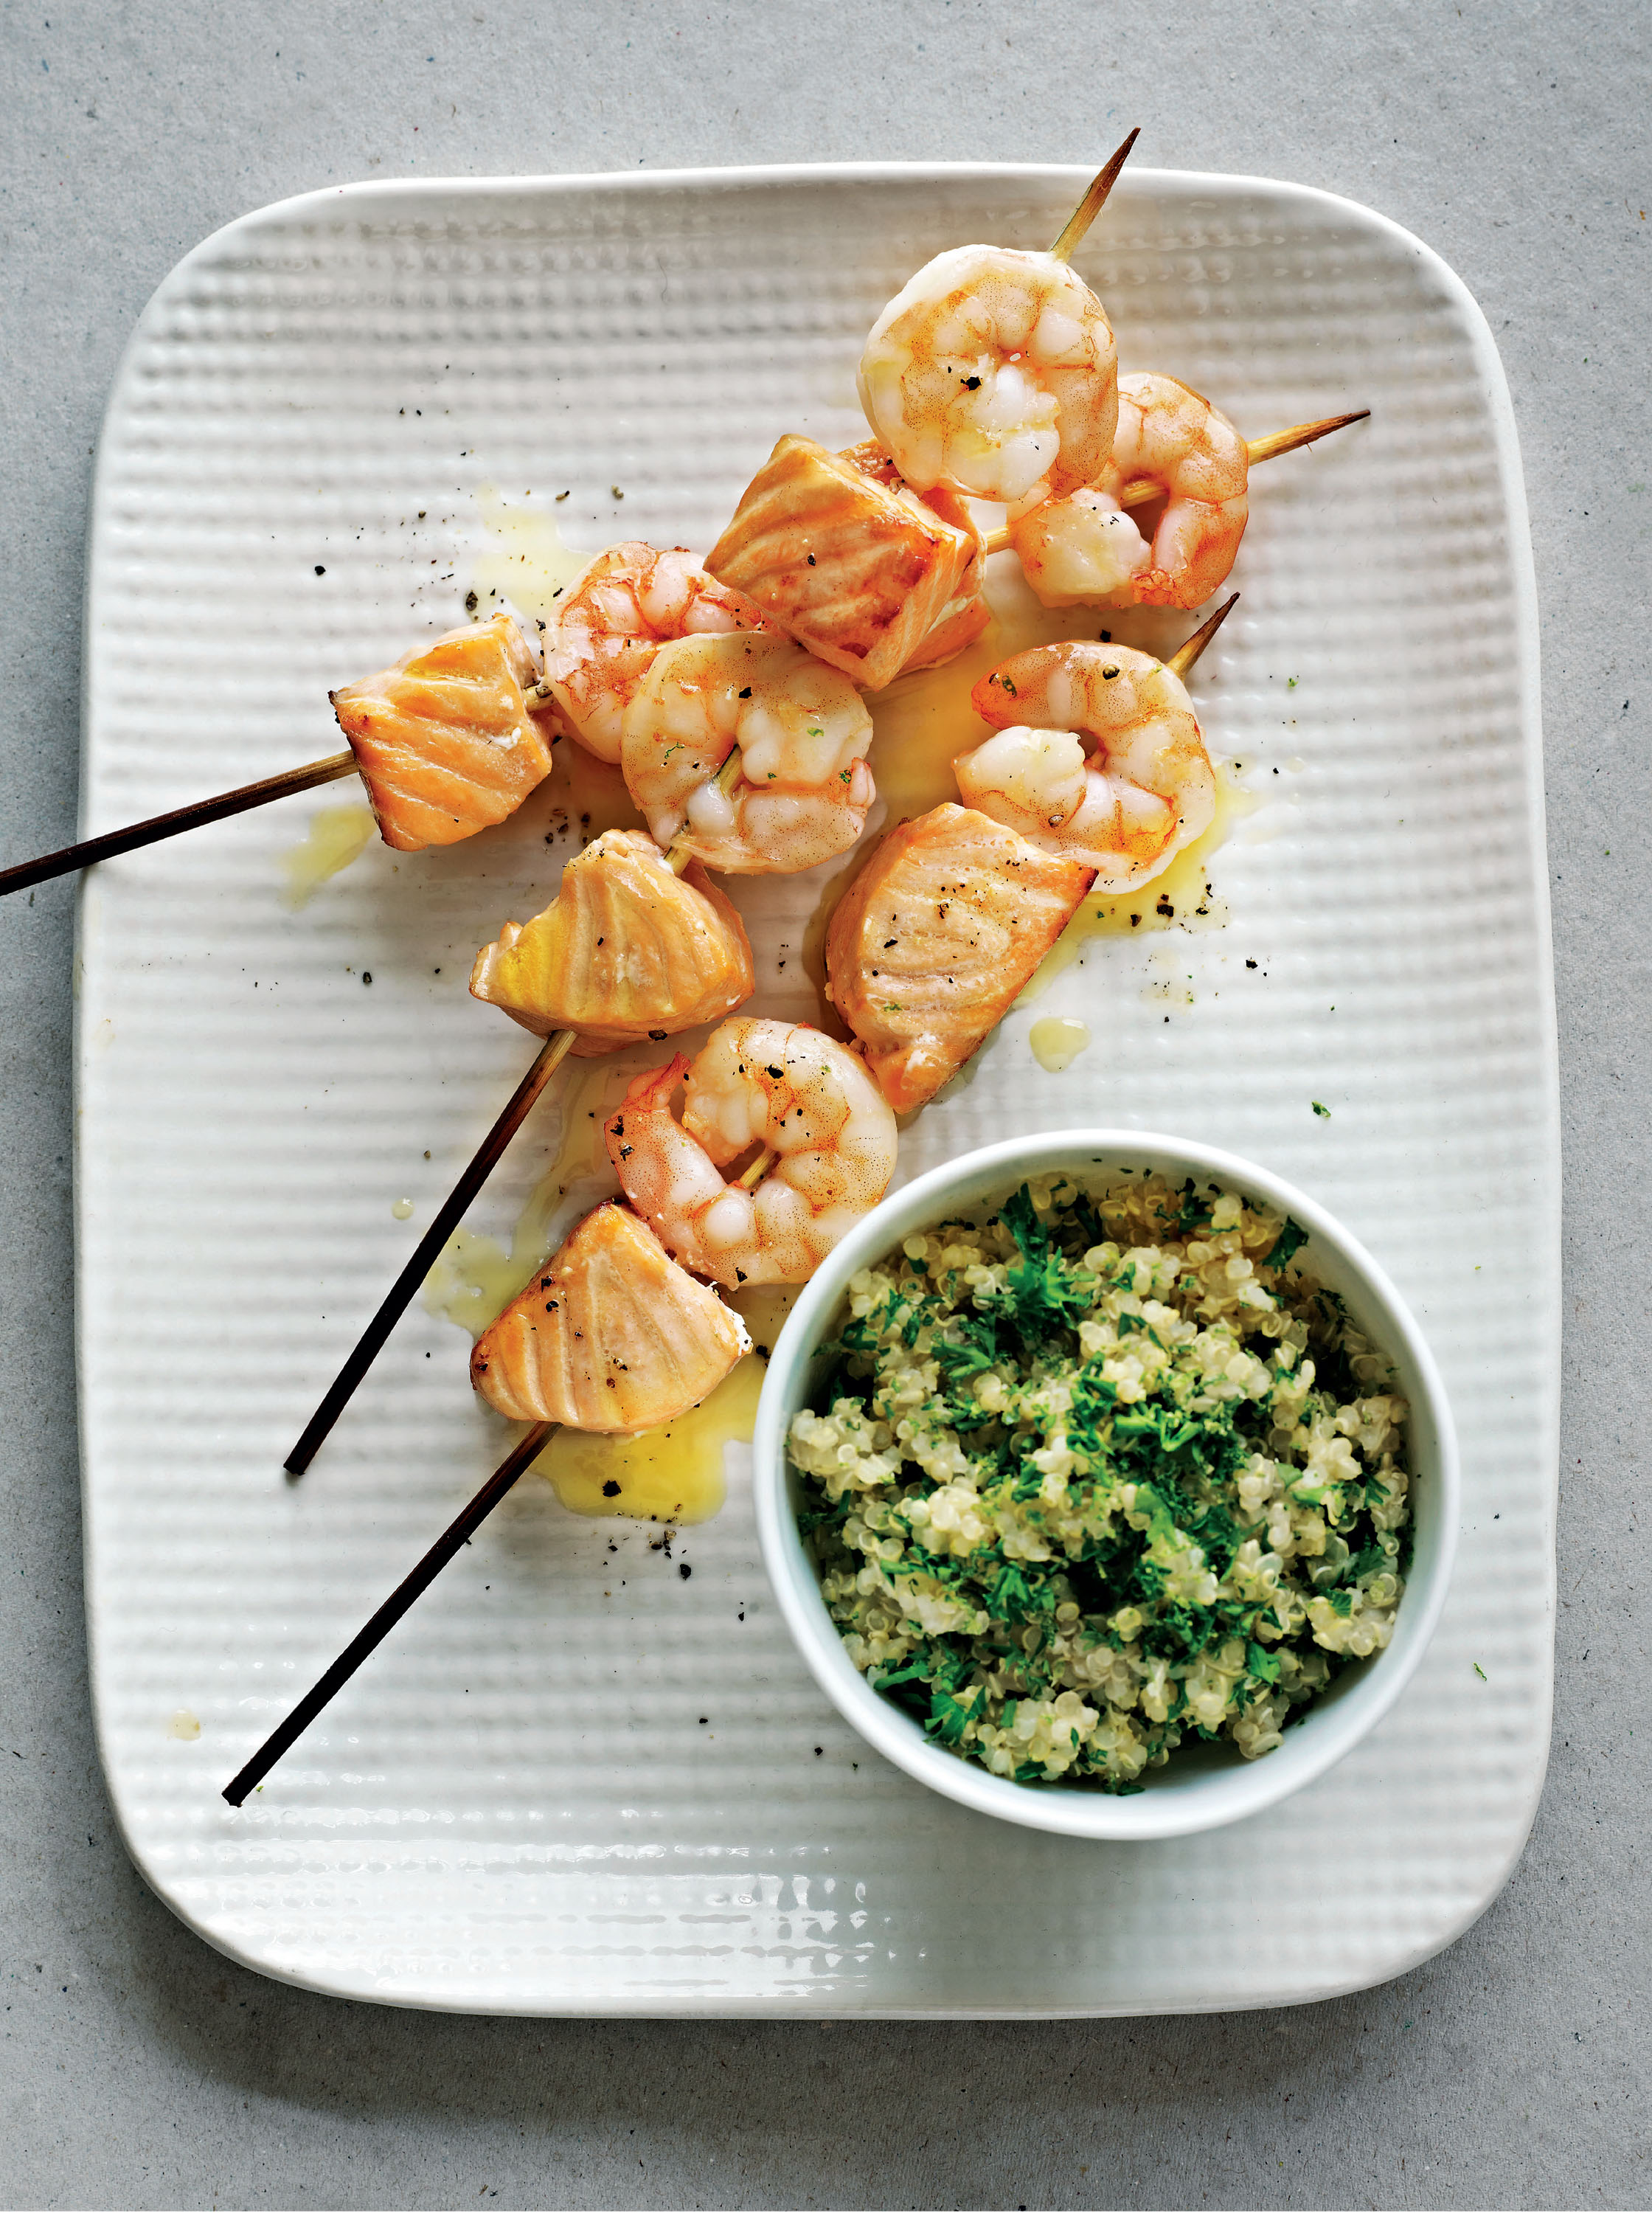 Salmon and king prawn skewers with citrus quinoa salad